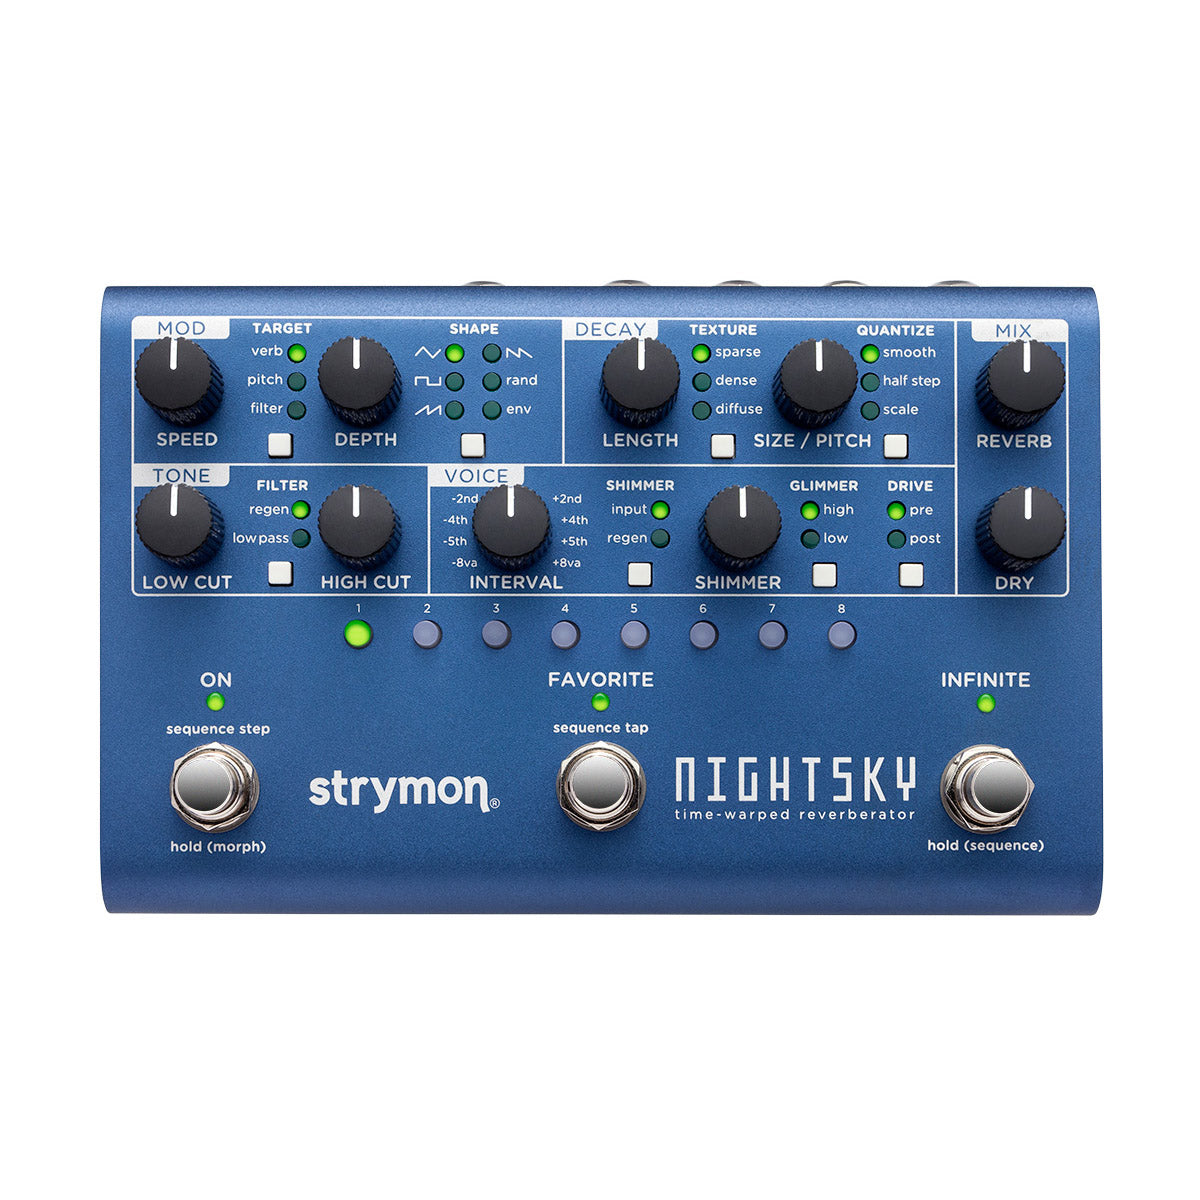 Strymon Effects Pedals - NightSky - Time Warped Reverberator